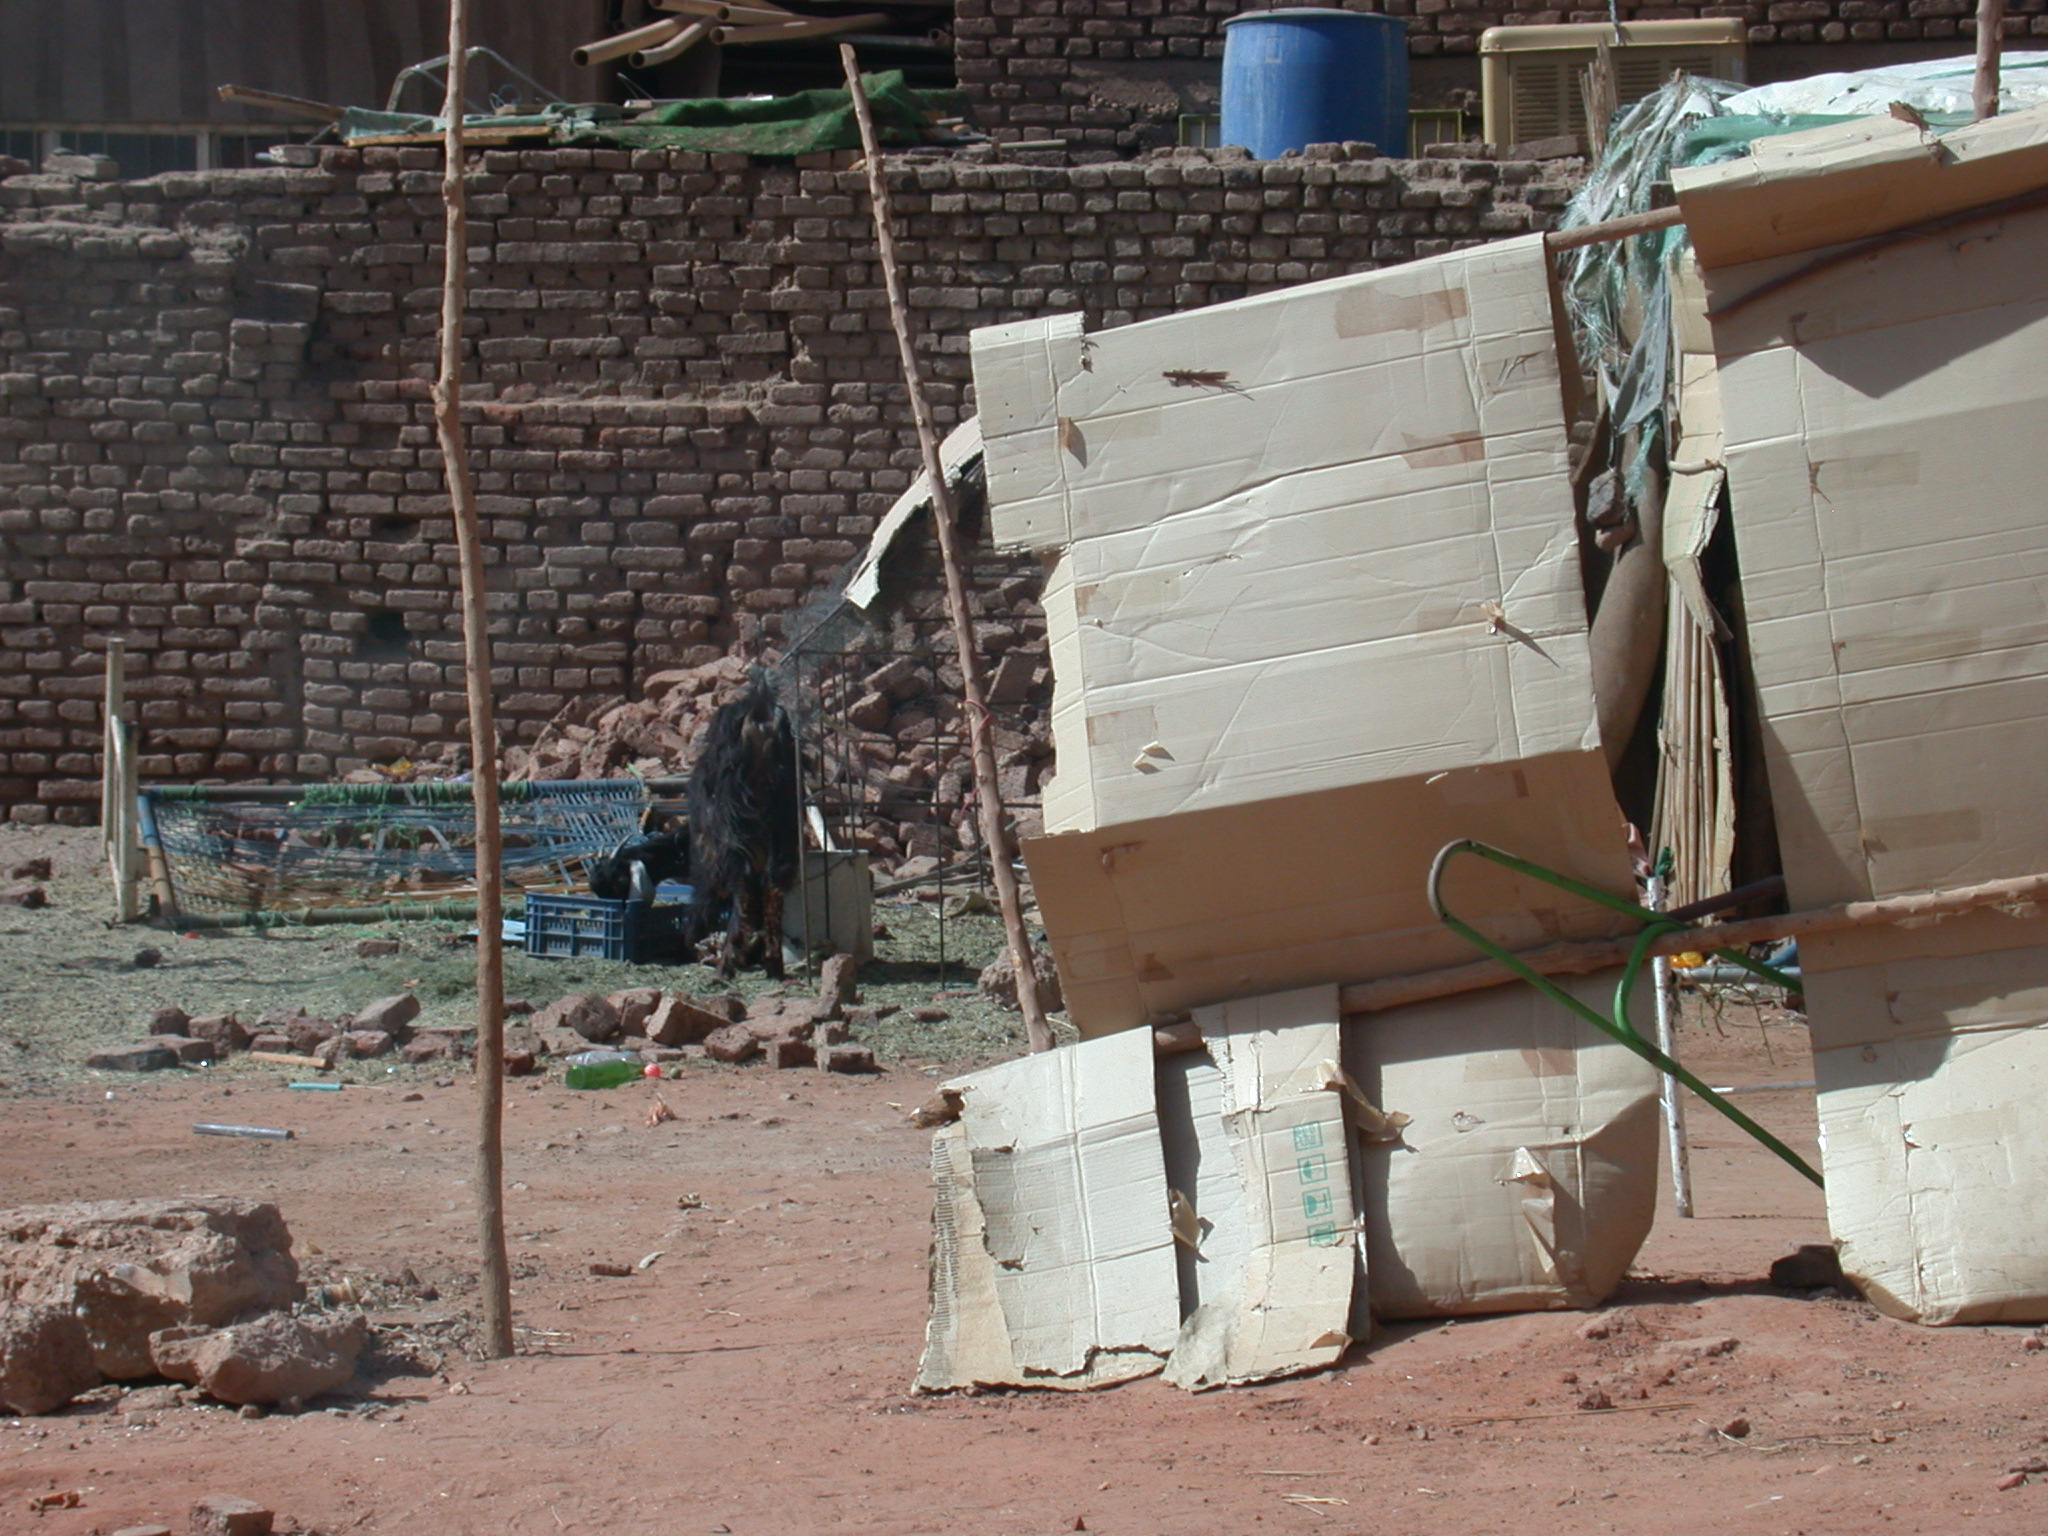 Goat and Temporary Housing, Khartoum, Sudan